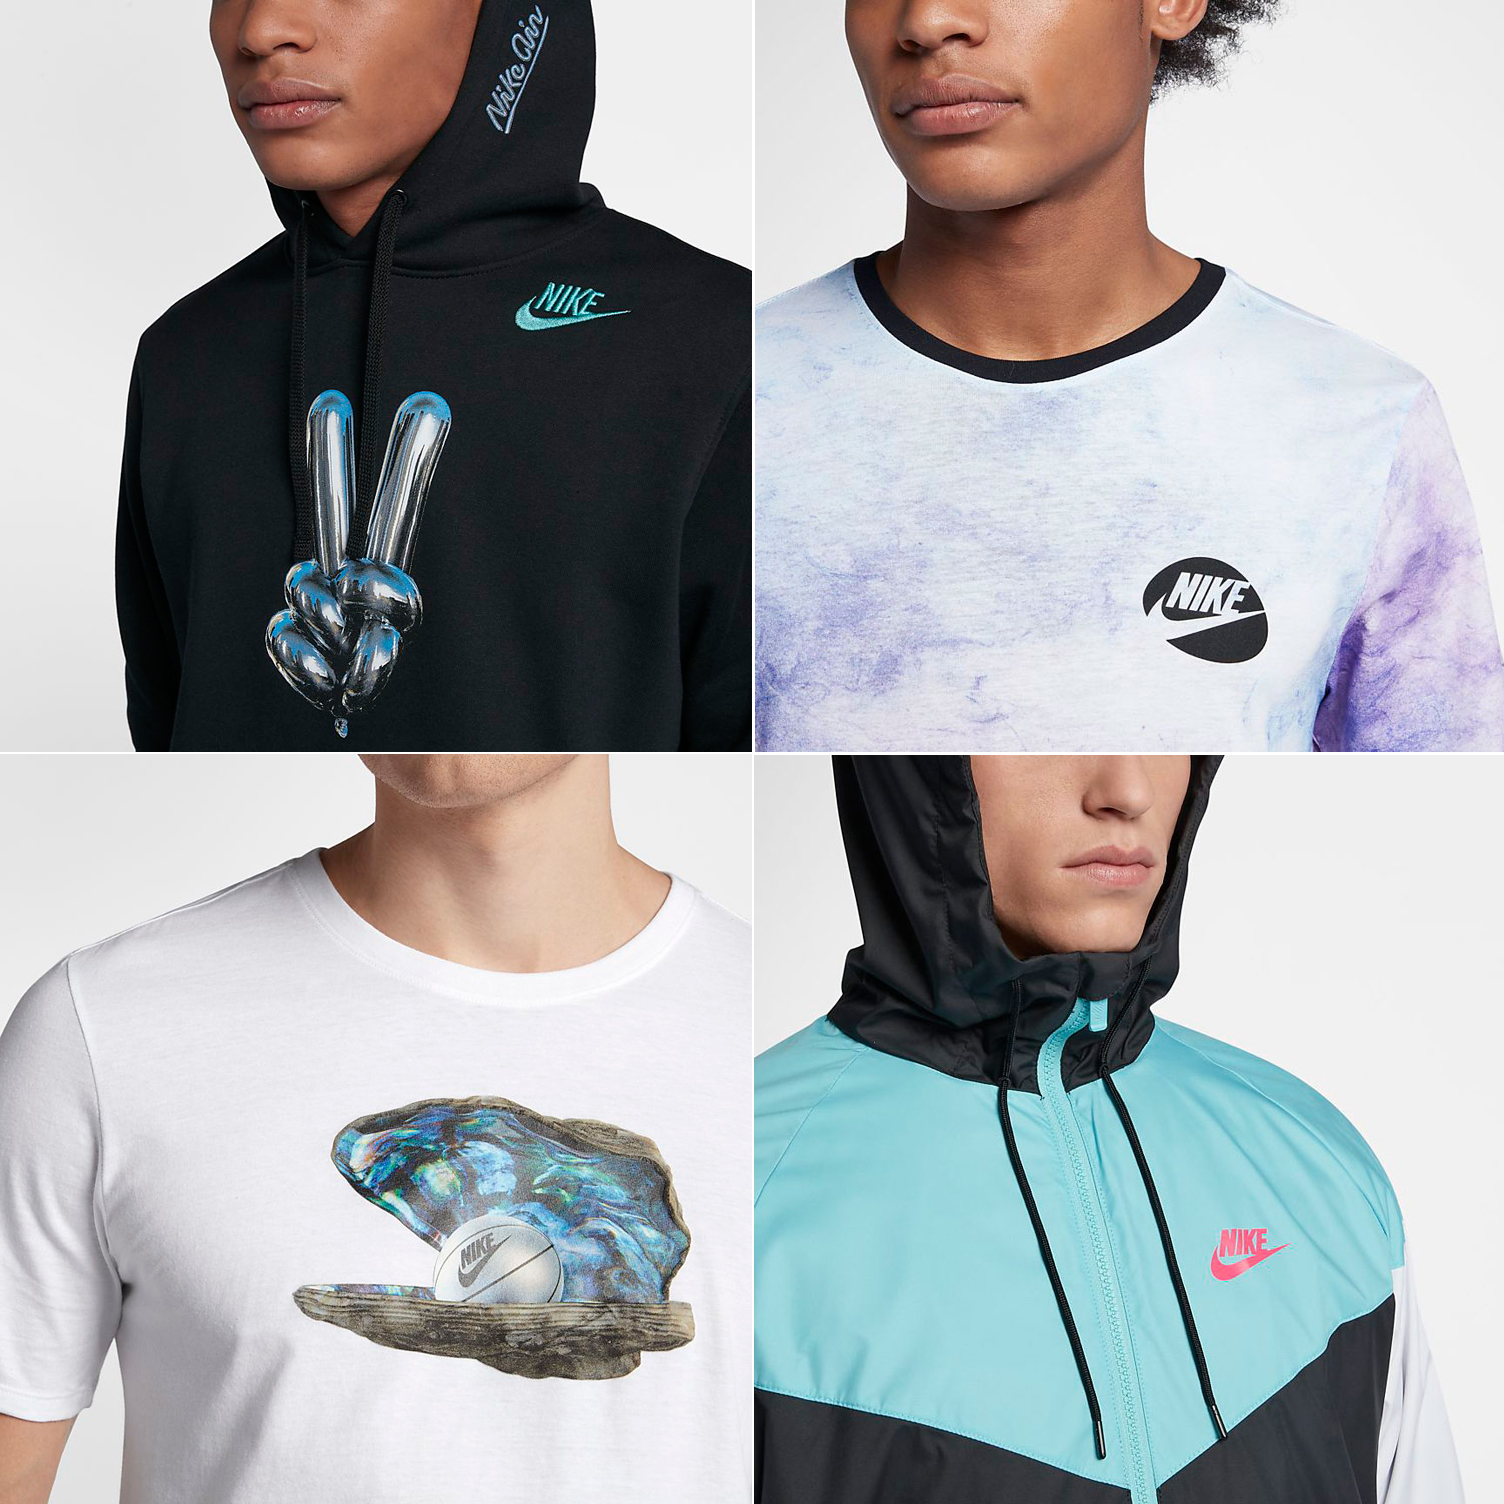 nike-abalone-foamposite-clothing